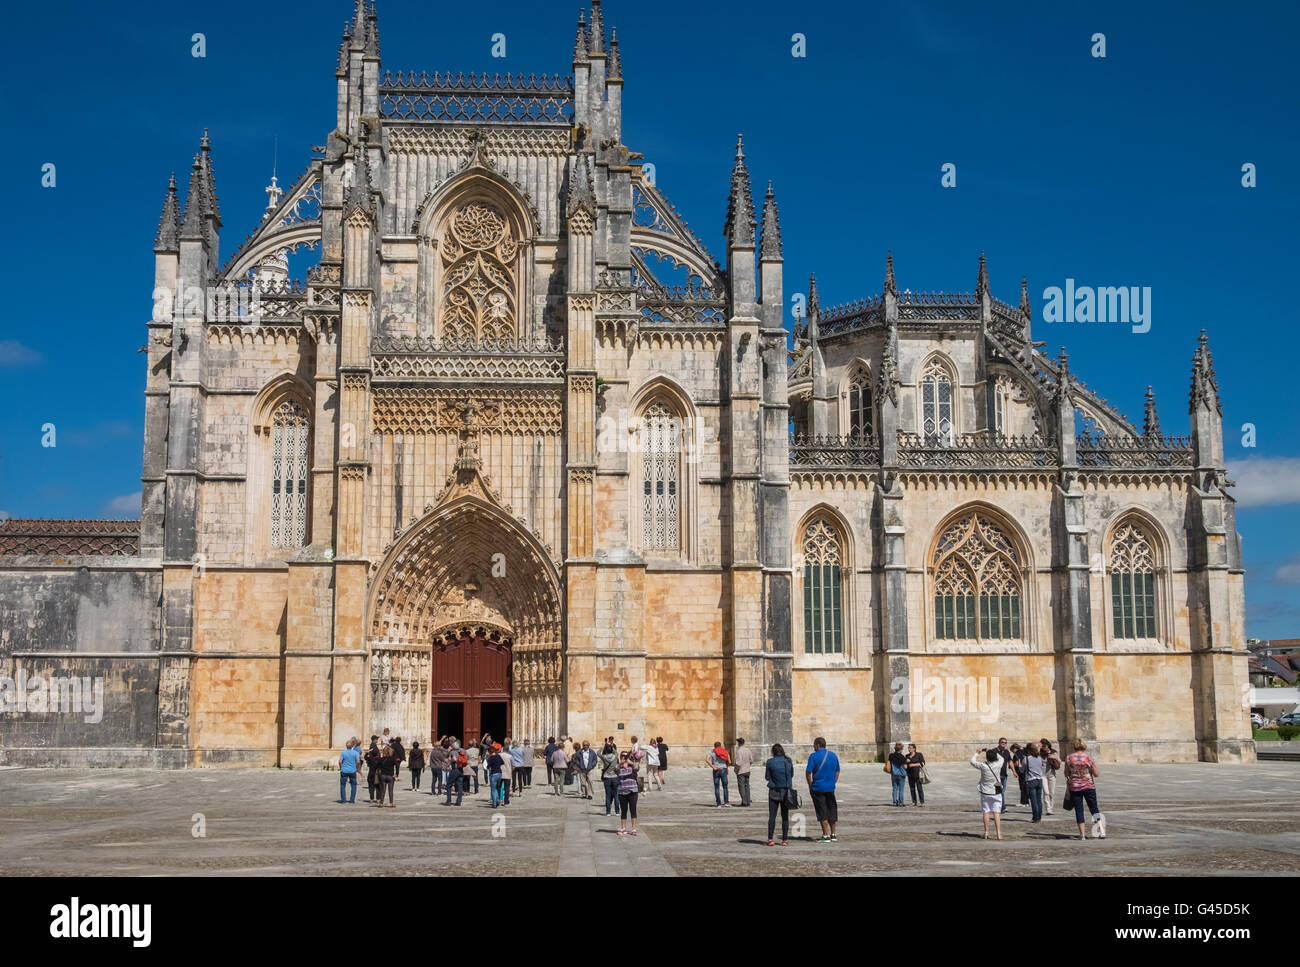 Tourists at Batalha Monastery (Mosteiro da Batalha), a UNESCO World Heritage Site, Batalha, Portugal - Stock Image